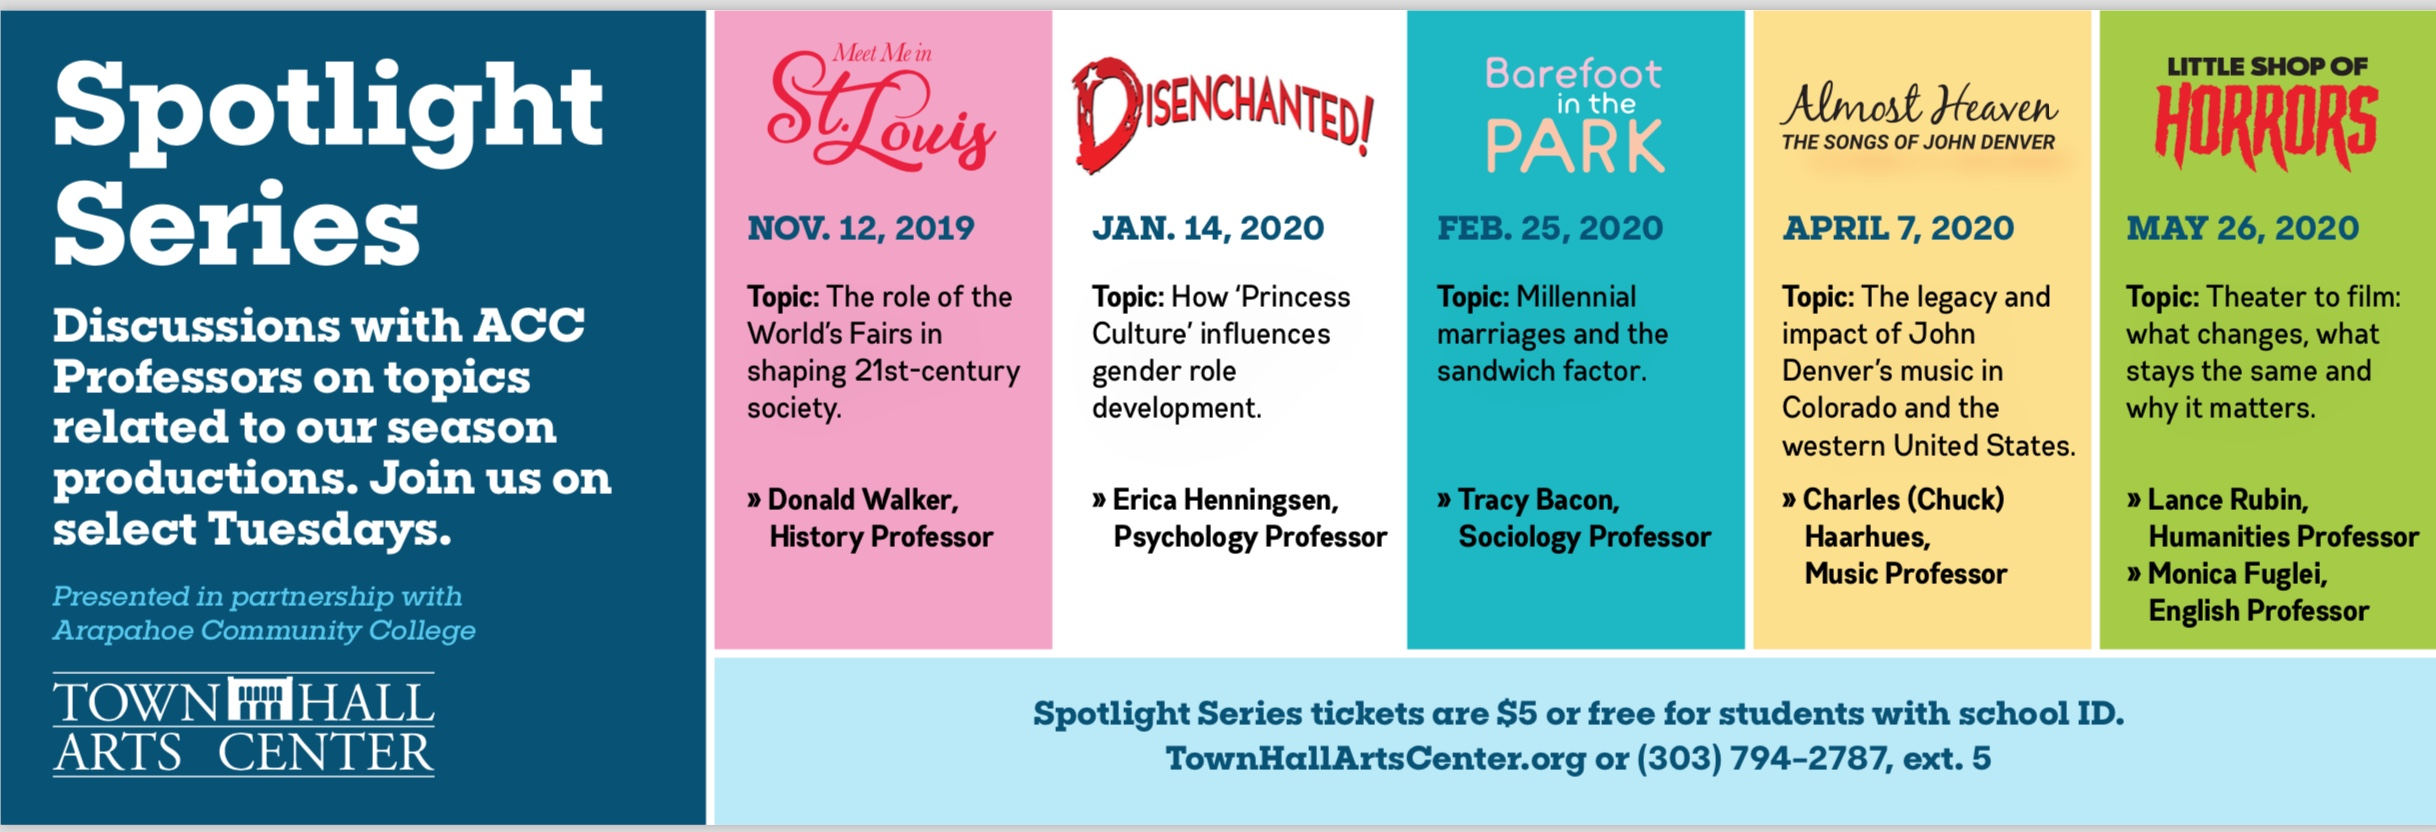 Town Hall Arts Center Spotlight Series